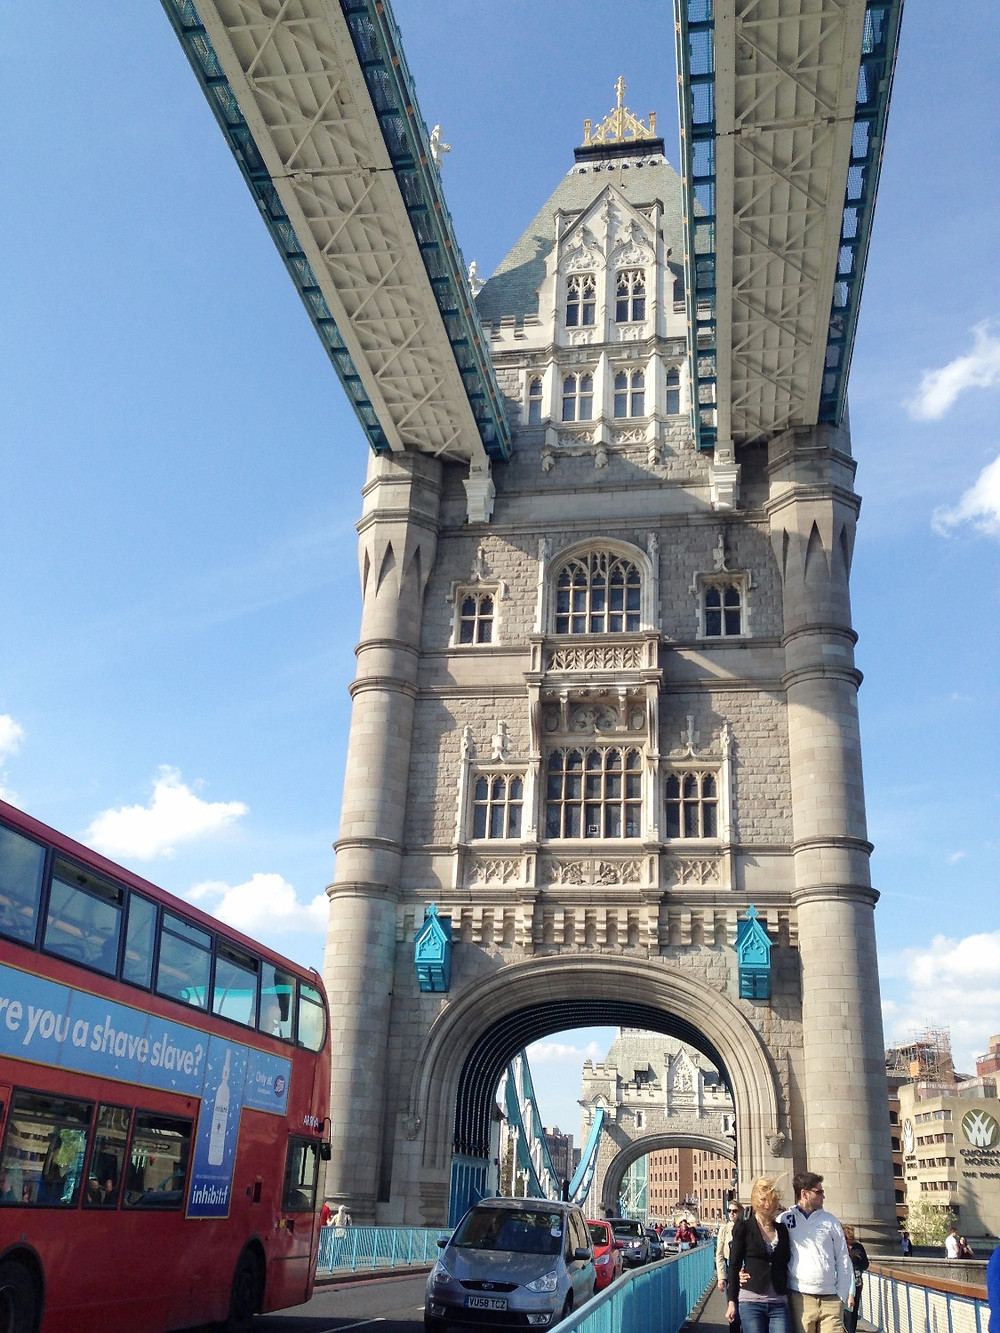 London Bridge- Double decker bus